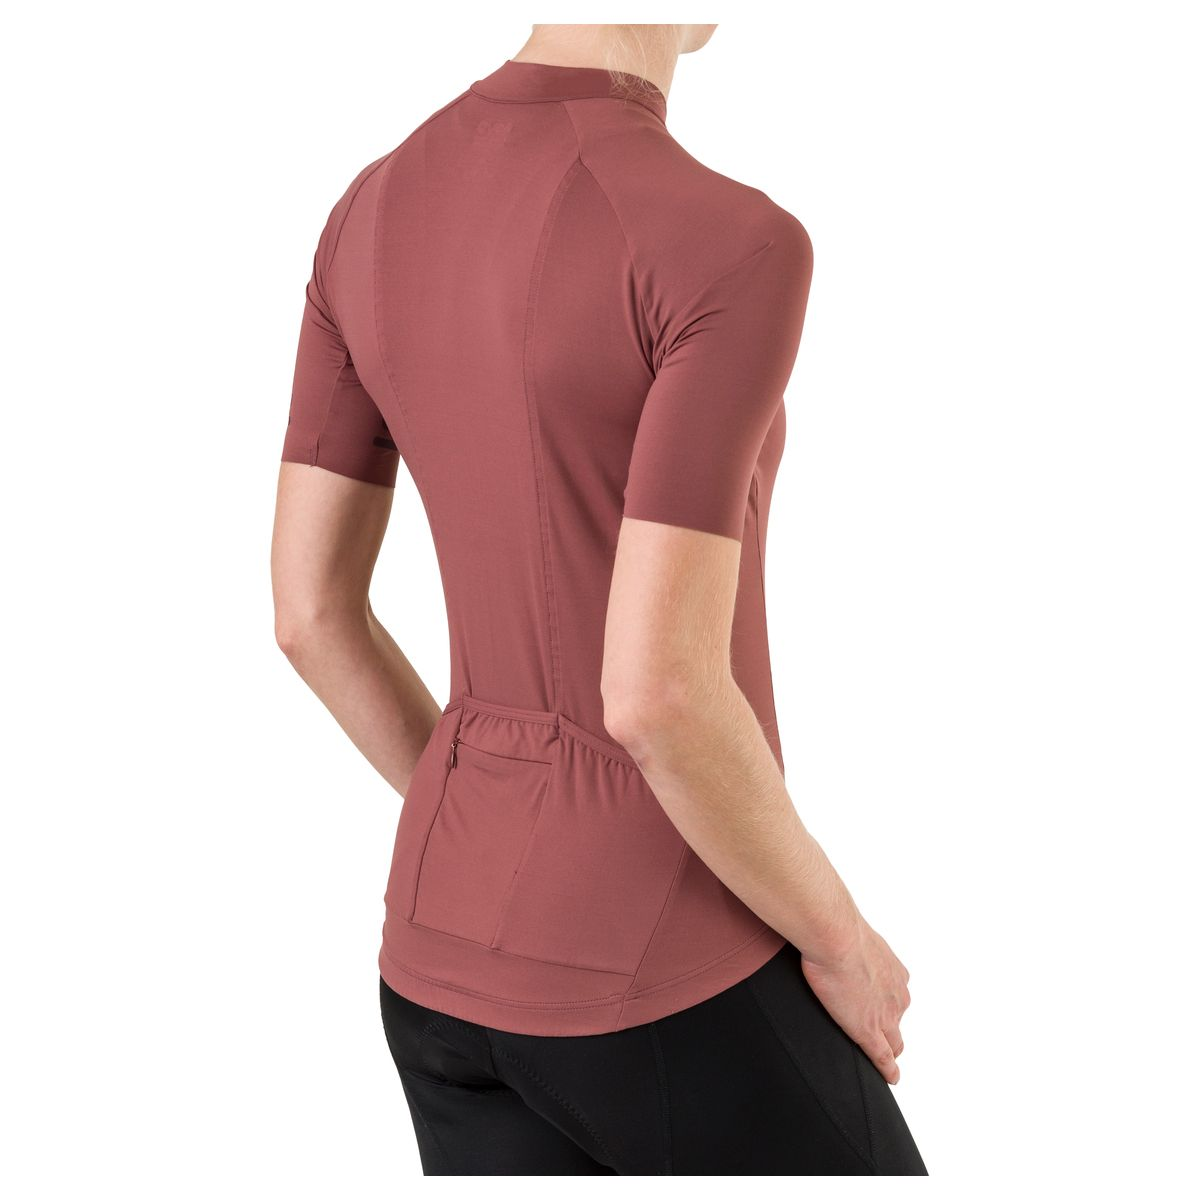 Solid Fietsshirt II Trend Dames fit example